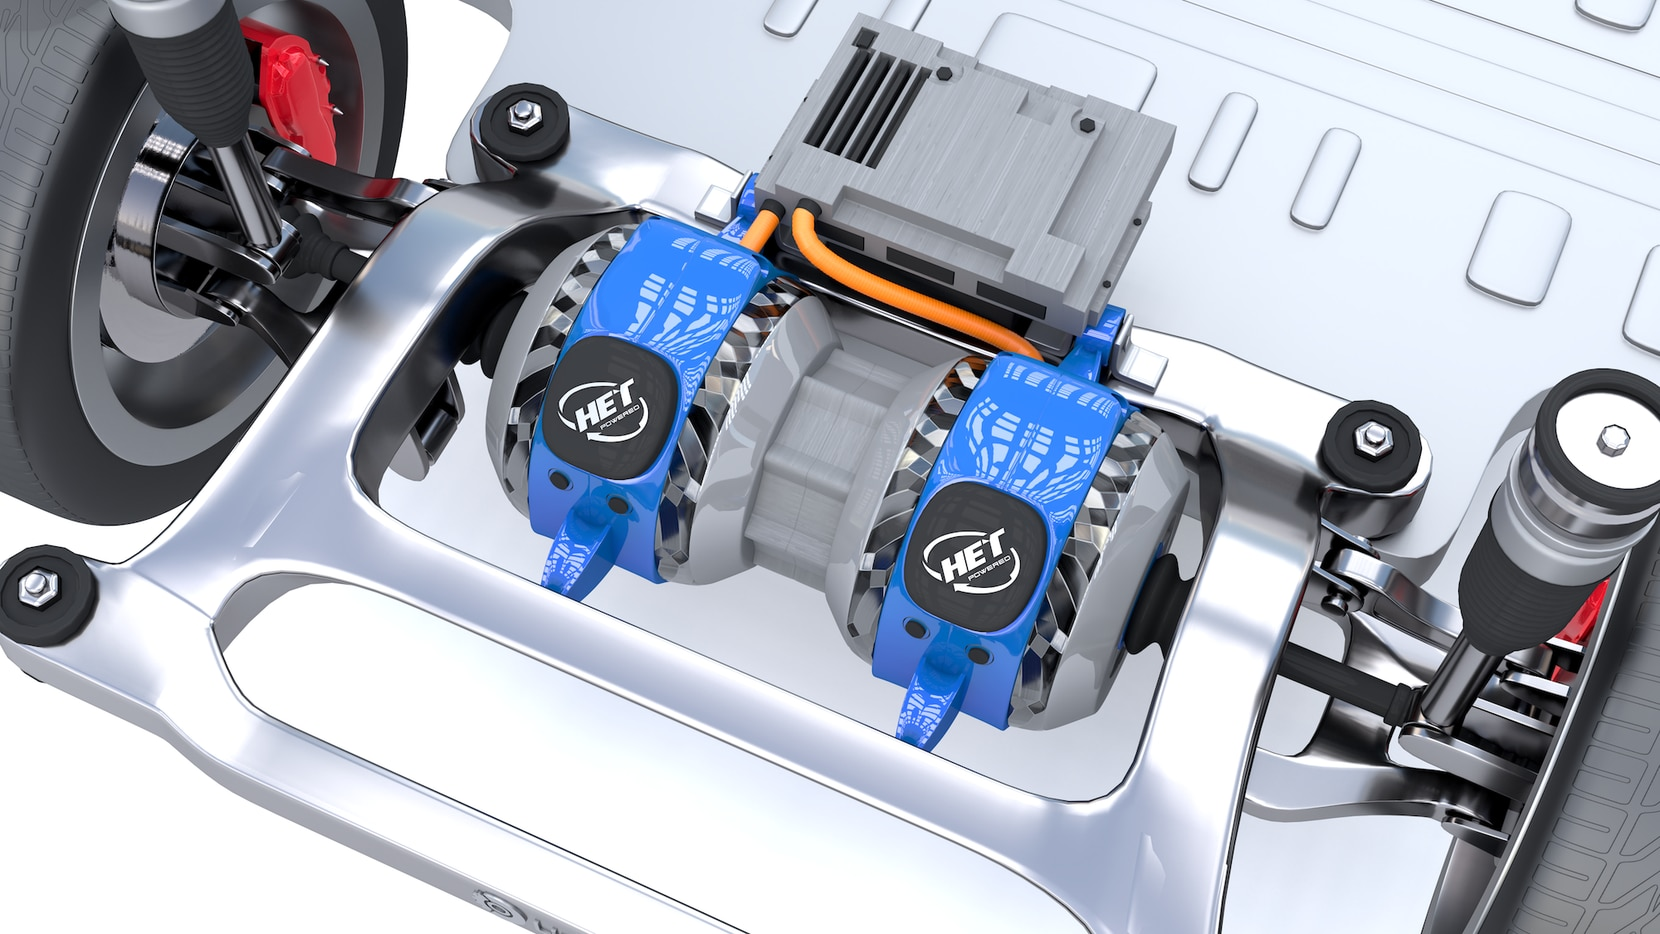 Linear Labs says its electric motor produces twice the torque of competing motors.